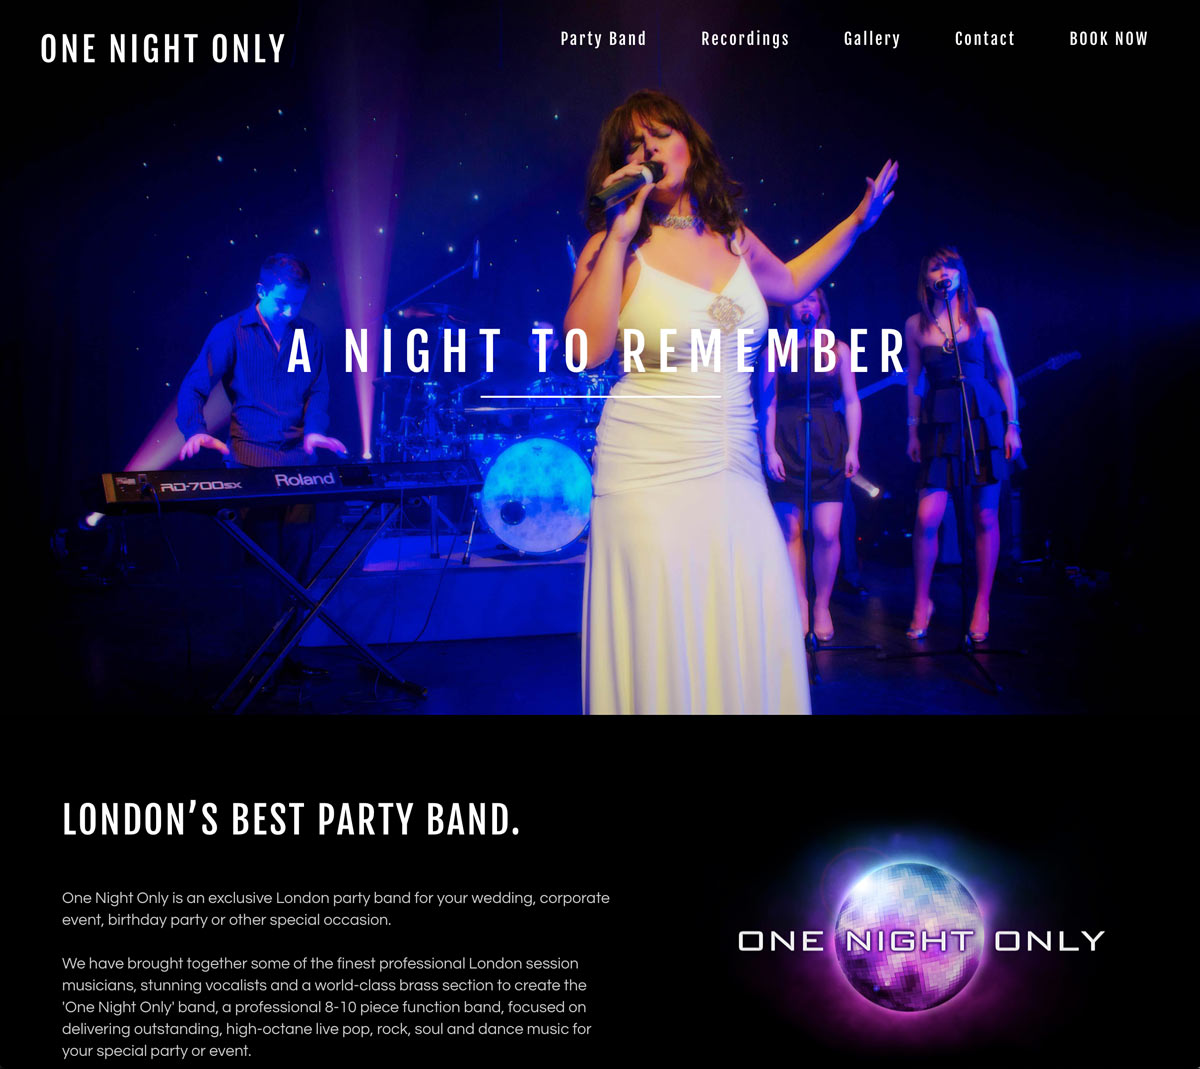 The website of One Night Only Function Band.